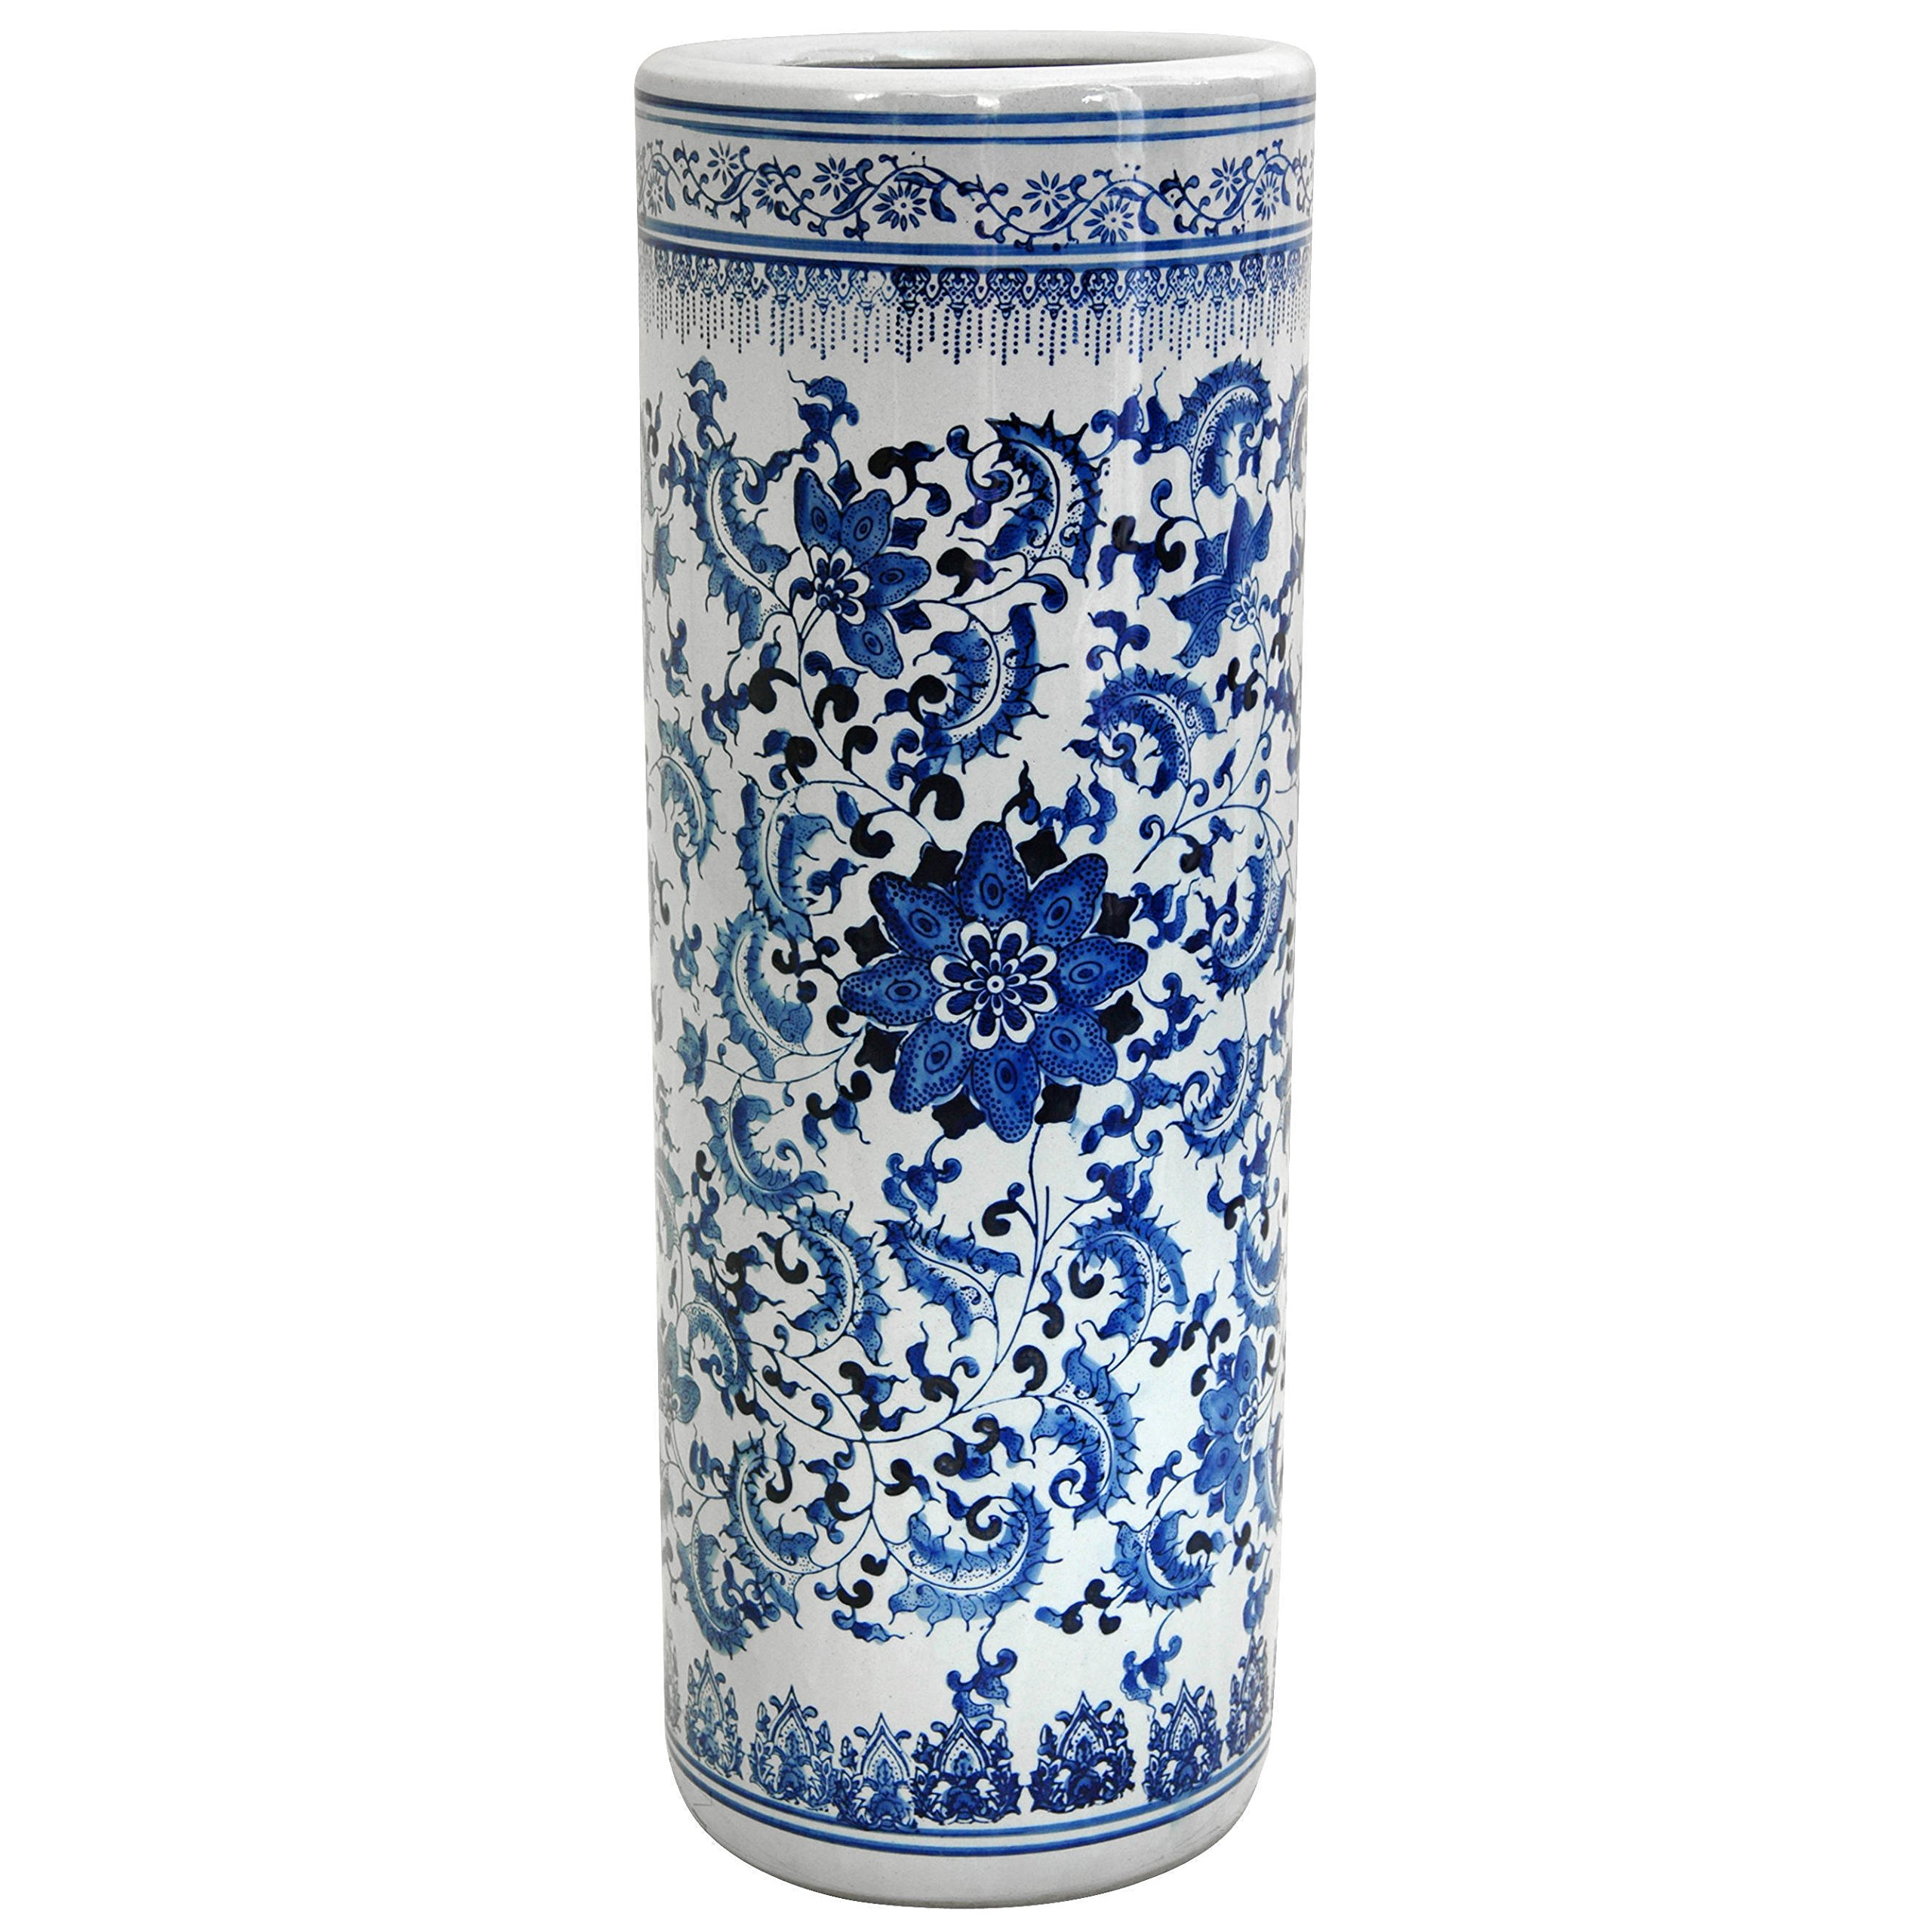 Handmade Porcelain 24-inch Blue and White Floral Umbrella Stand (China)